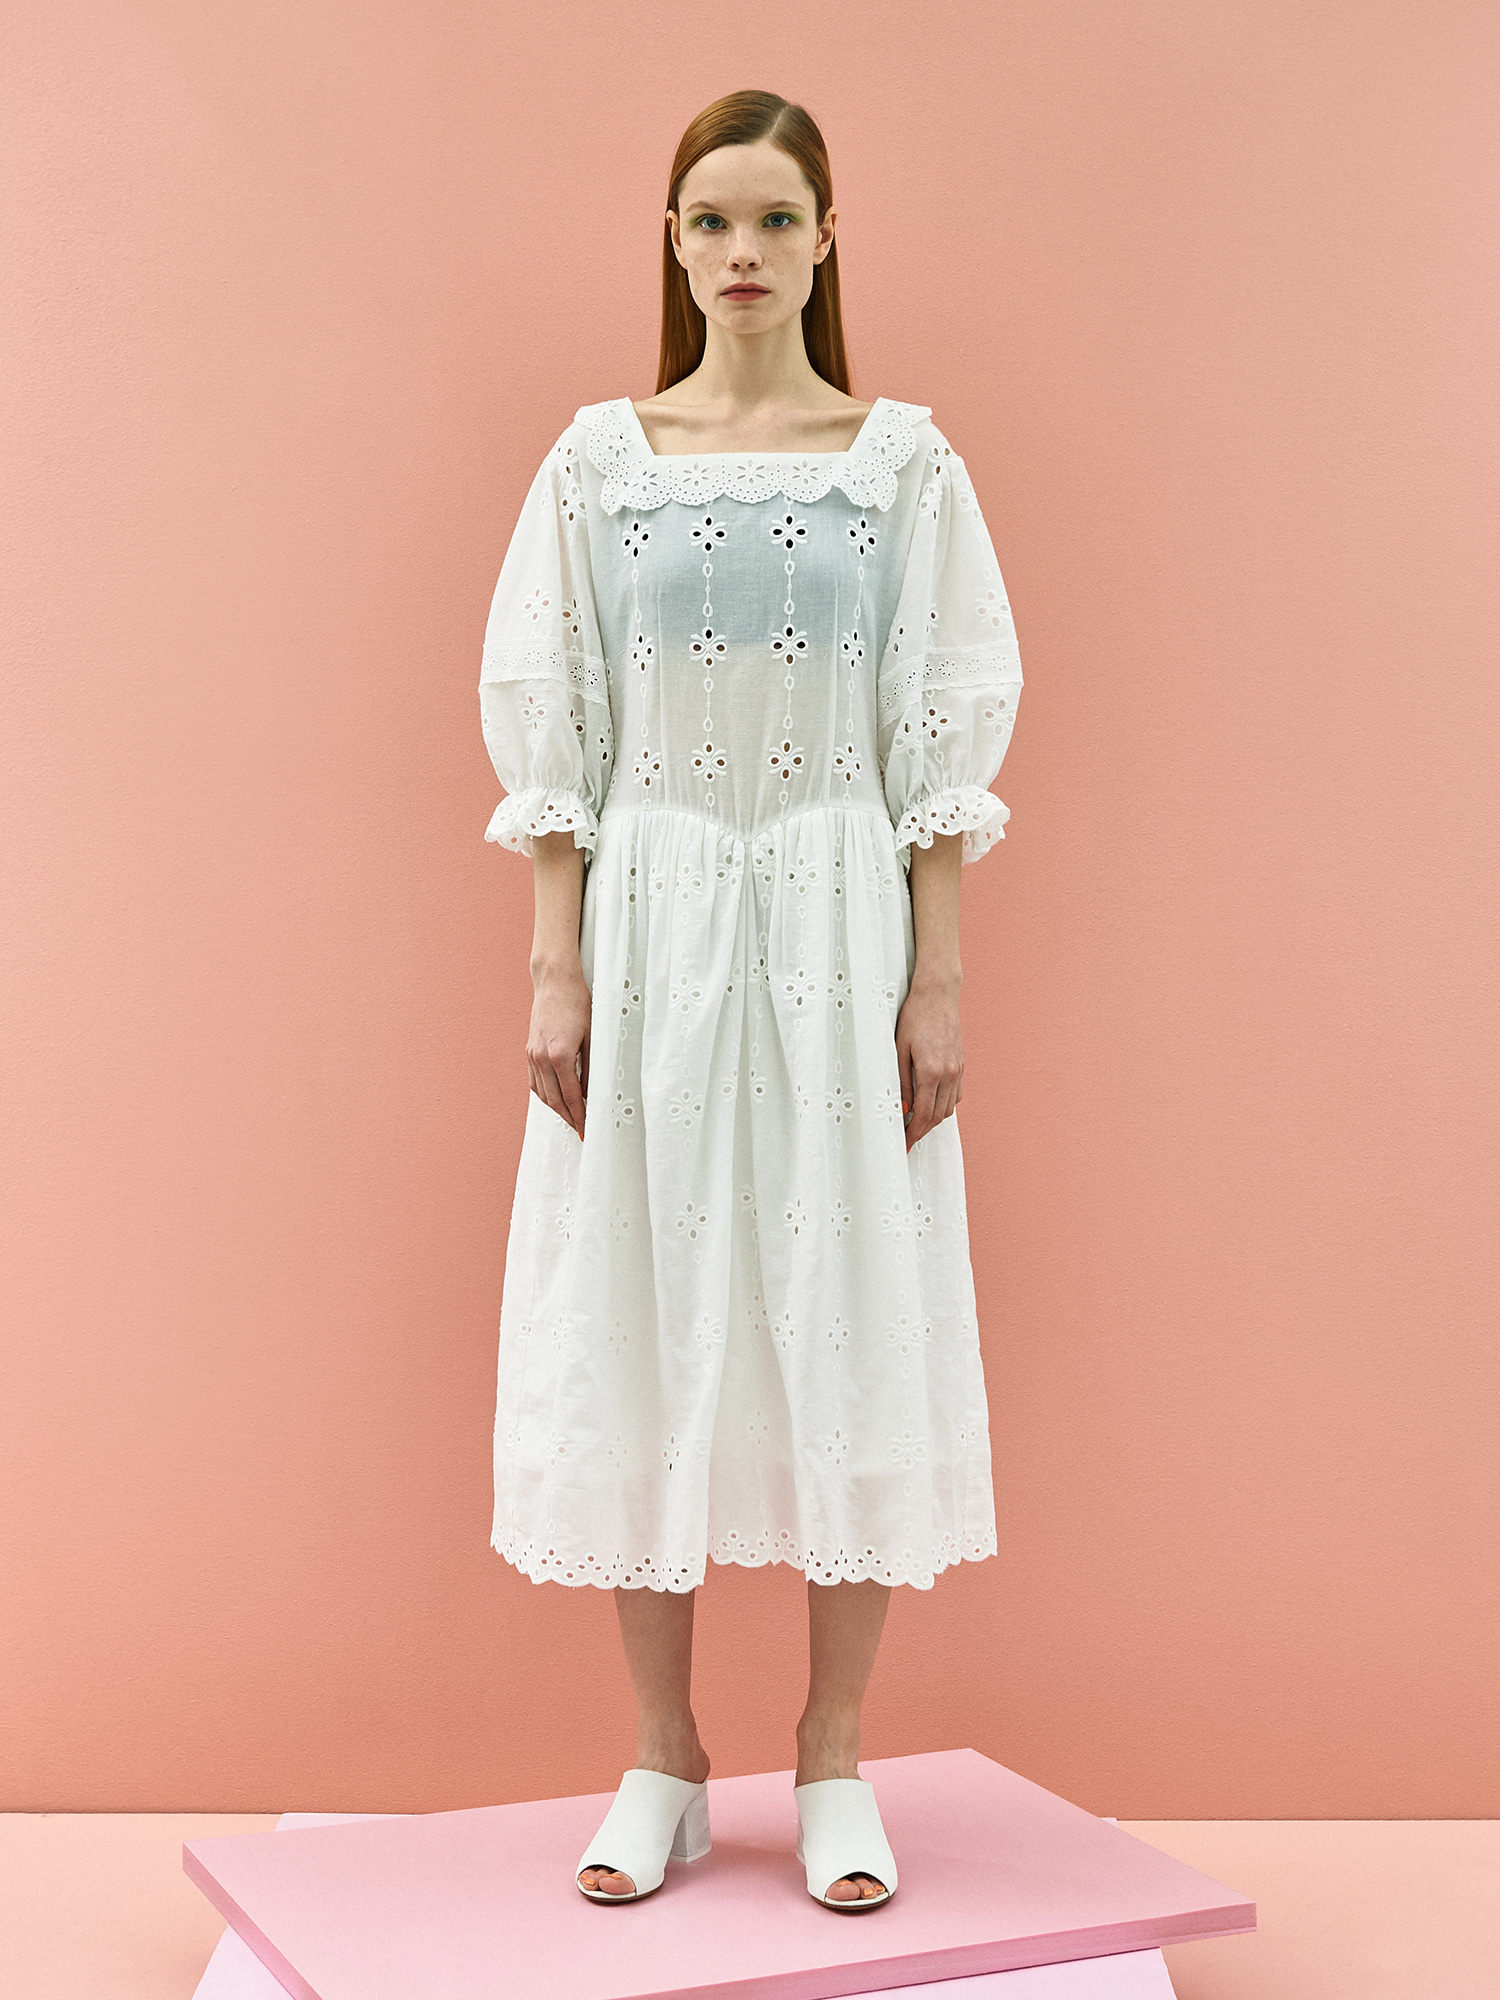 [SUMMER BIG SALE]Girlish Lace Cotton Dress in White